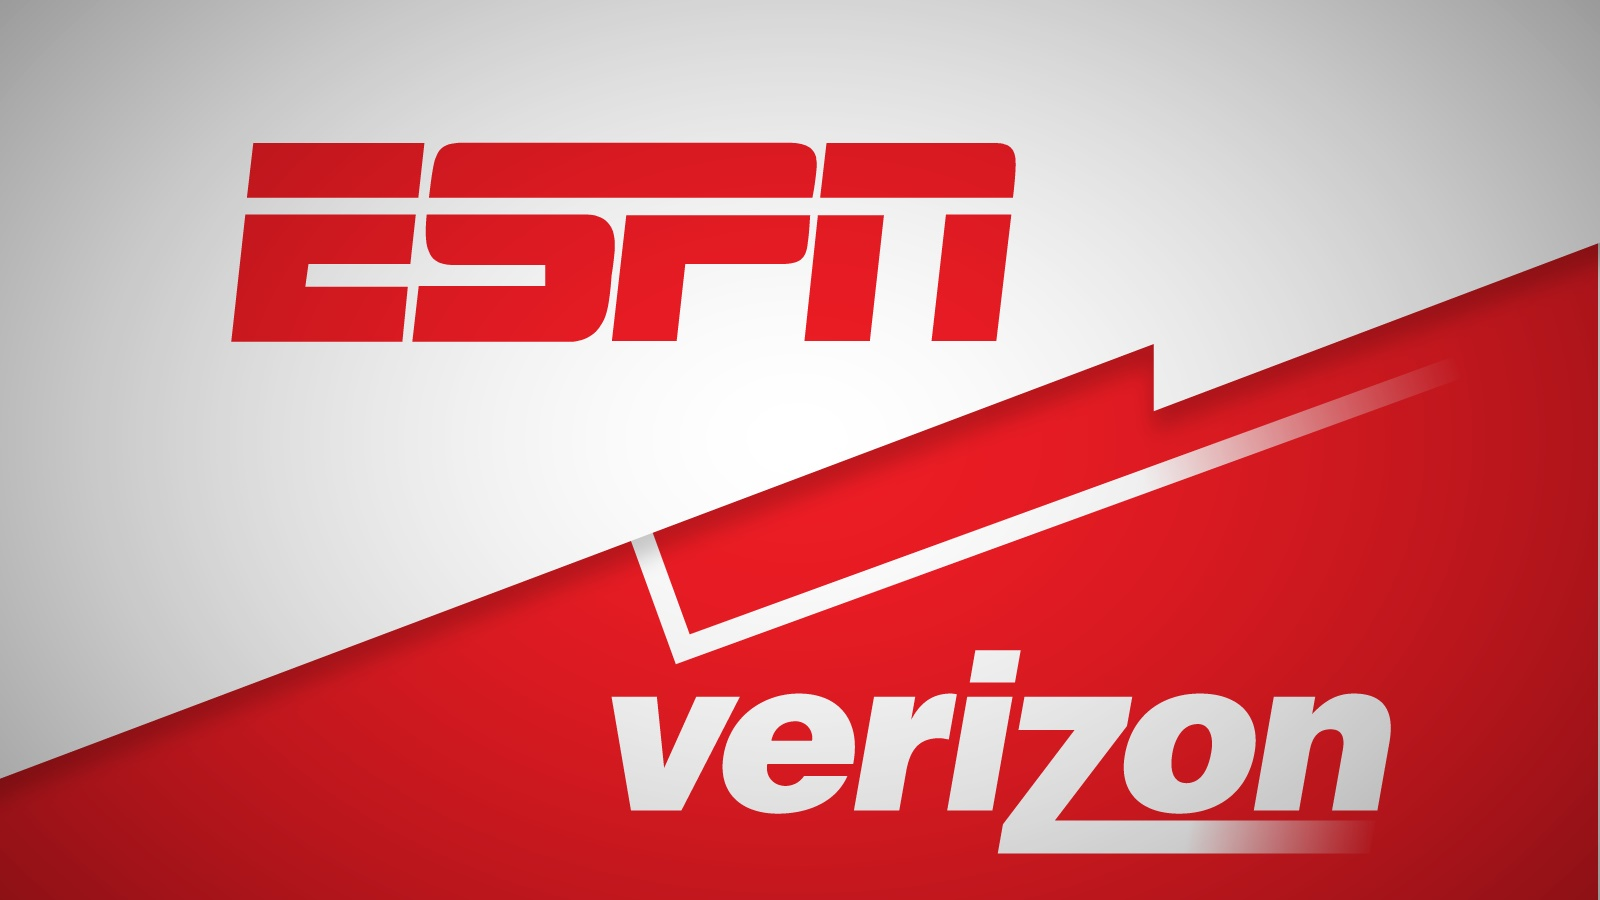 ESPN sued Verizon saying its contracts prohibit the separation. Image Credit: TCTechCrunch2011